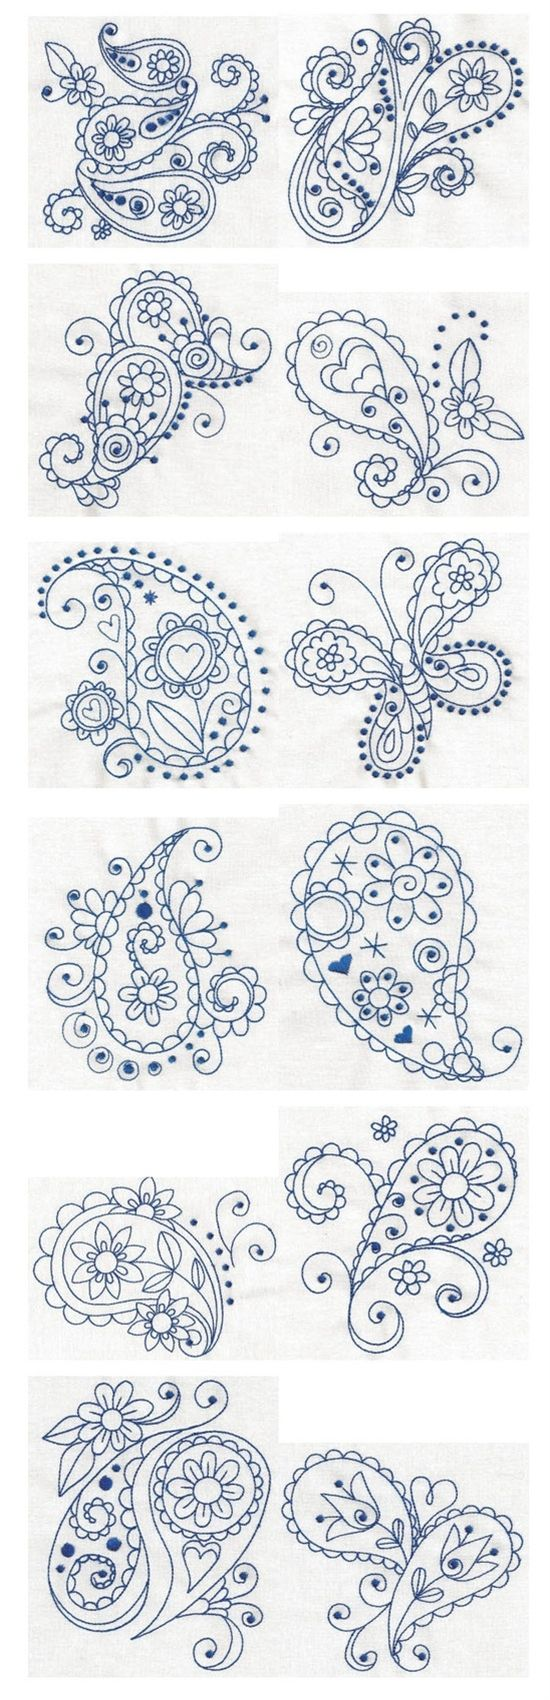 Embroidery | Free Maching Embroidery Designs | Paisley Bl | Postris